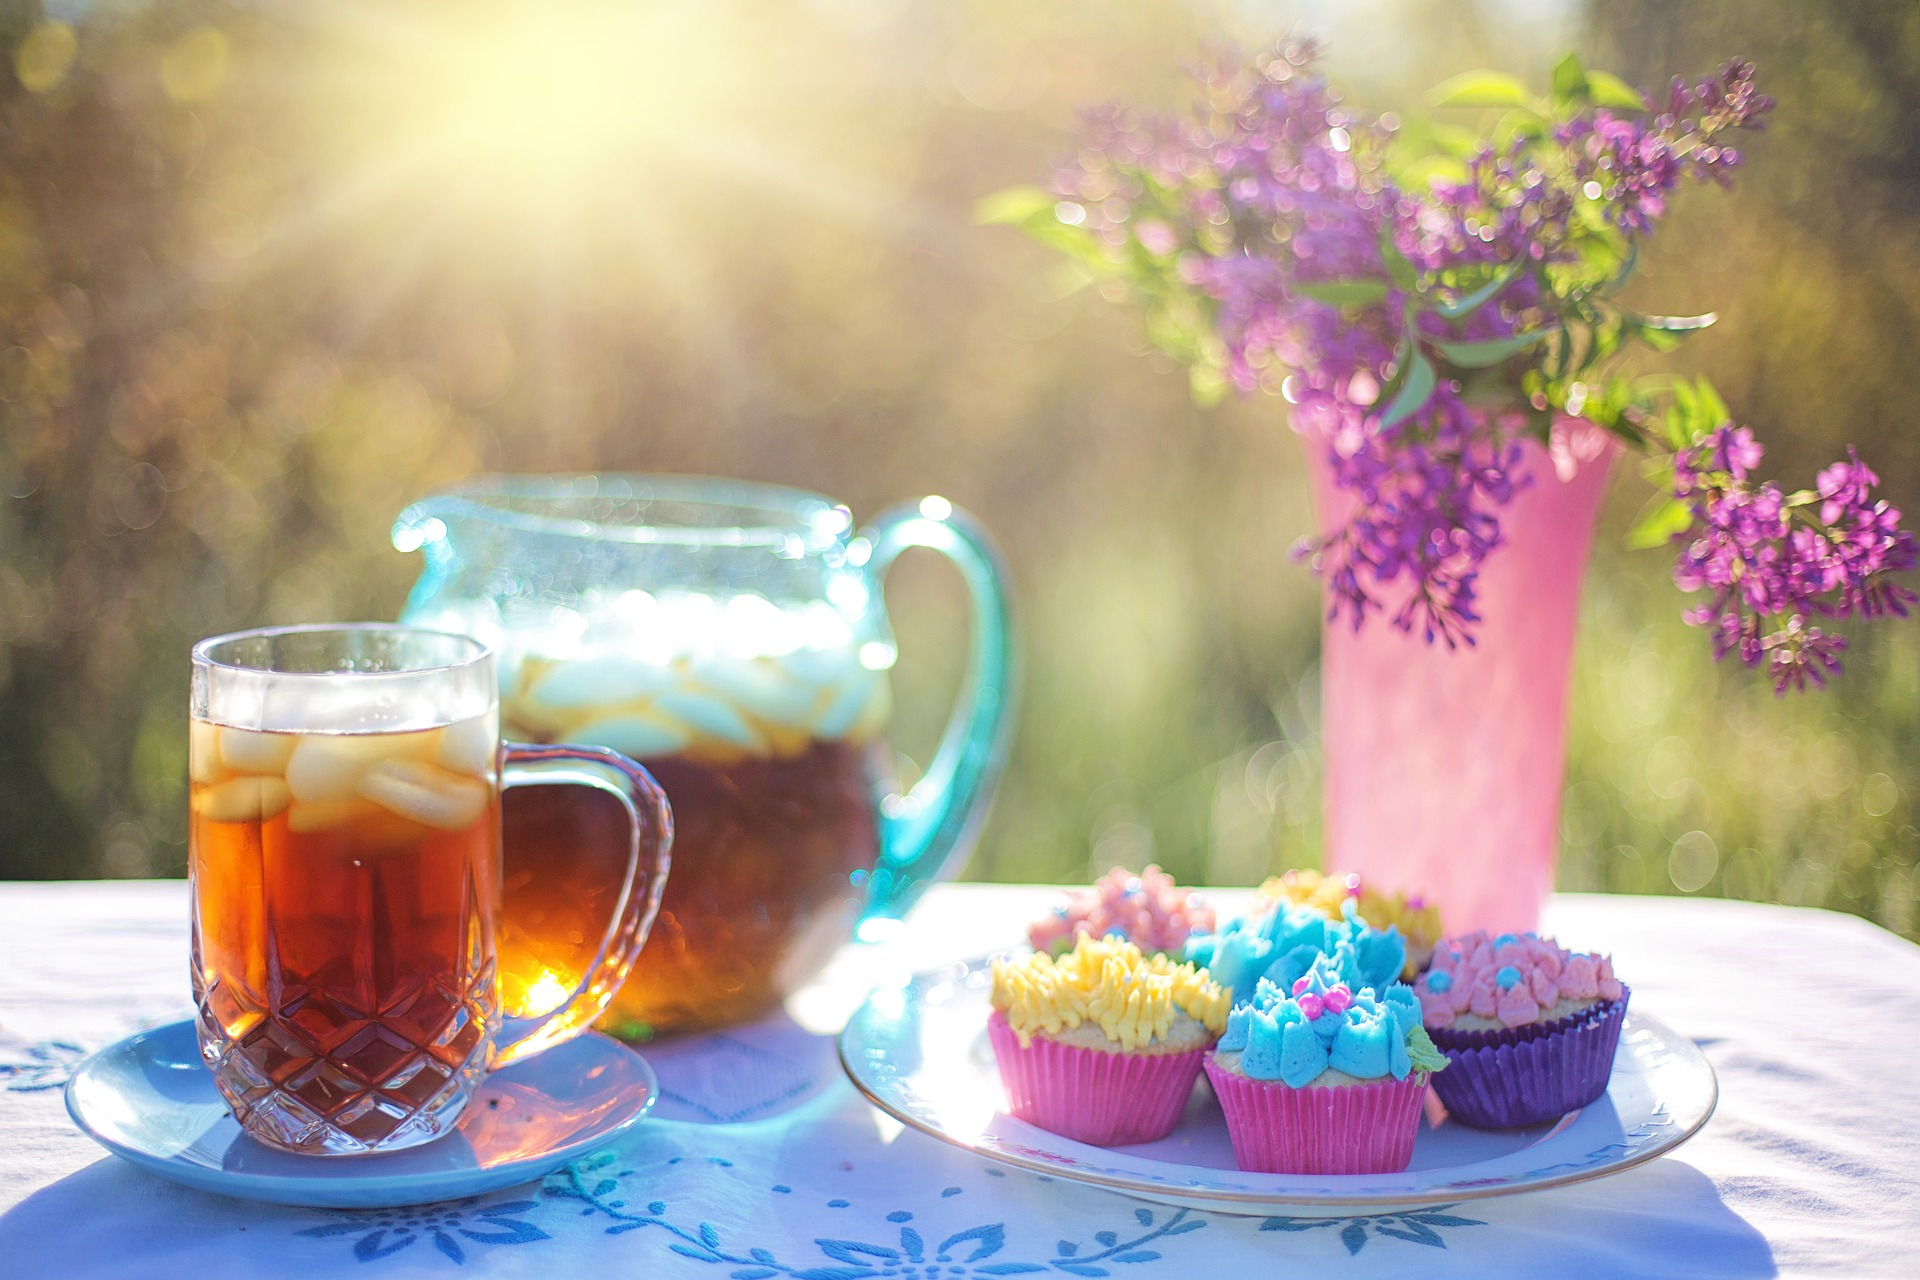 Izzy's 3 Favourite Iced Tea Recipes for Hot Days